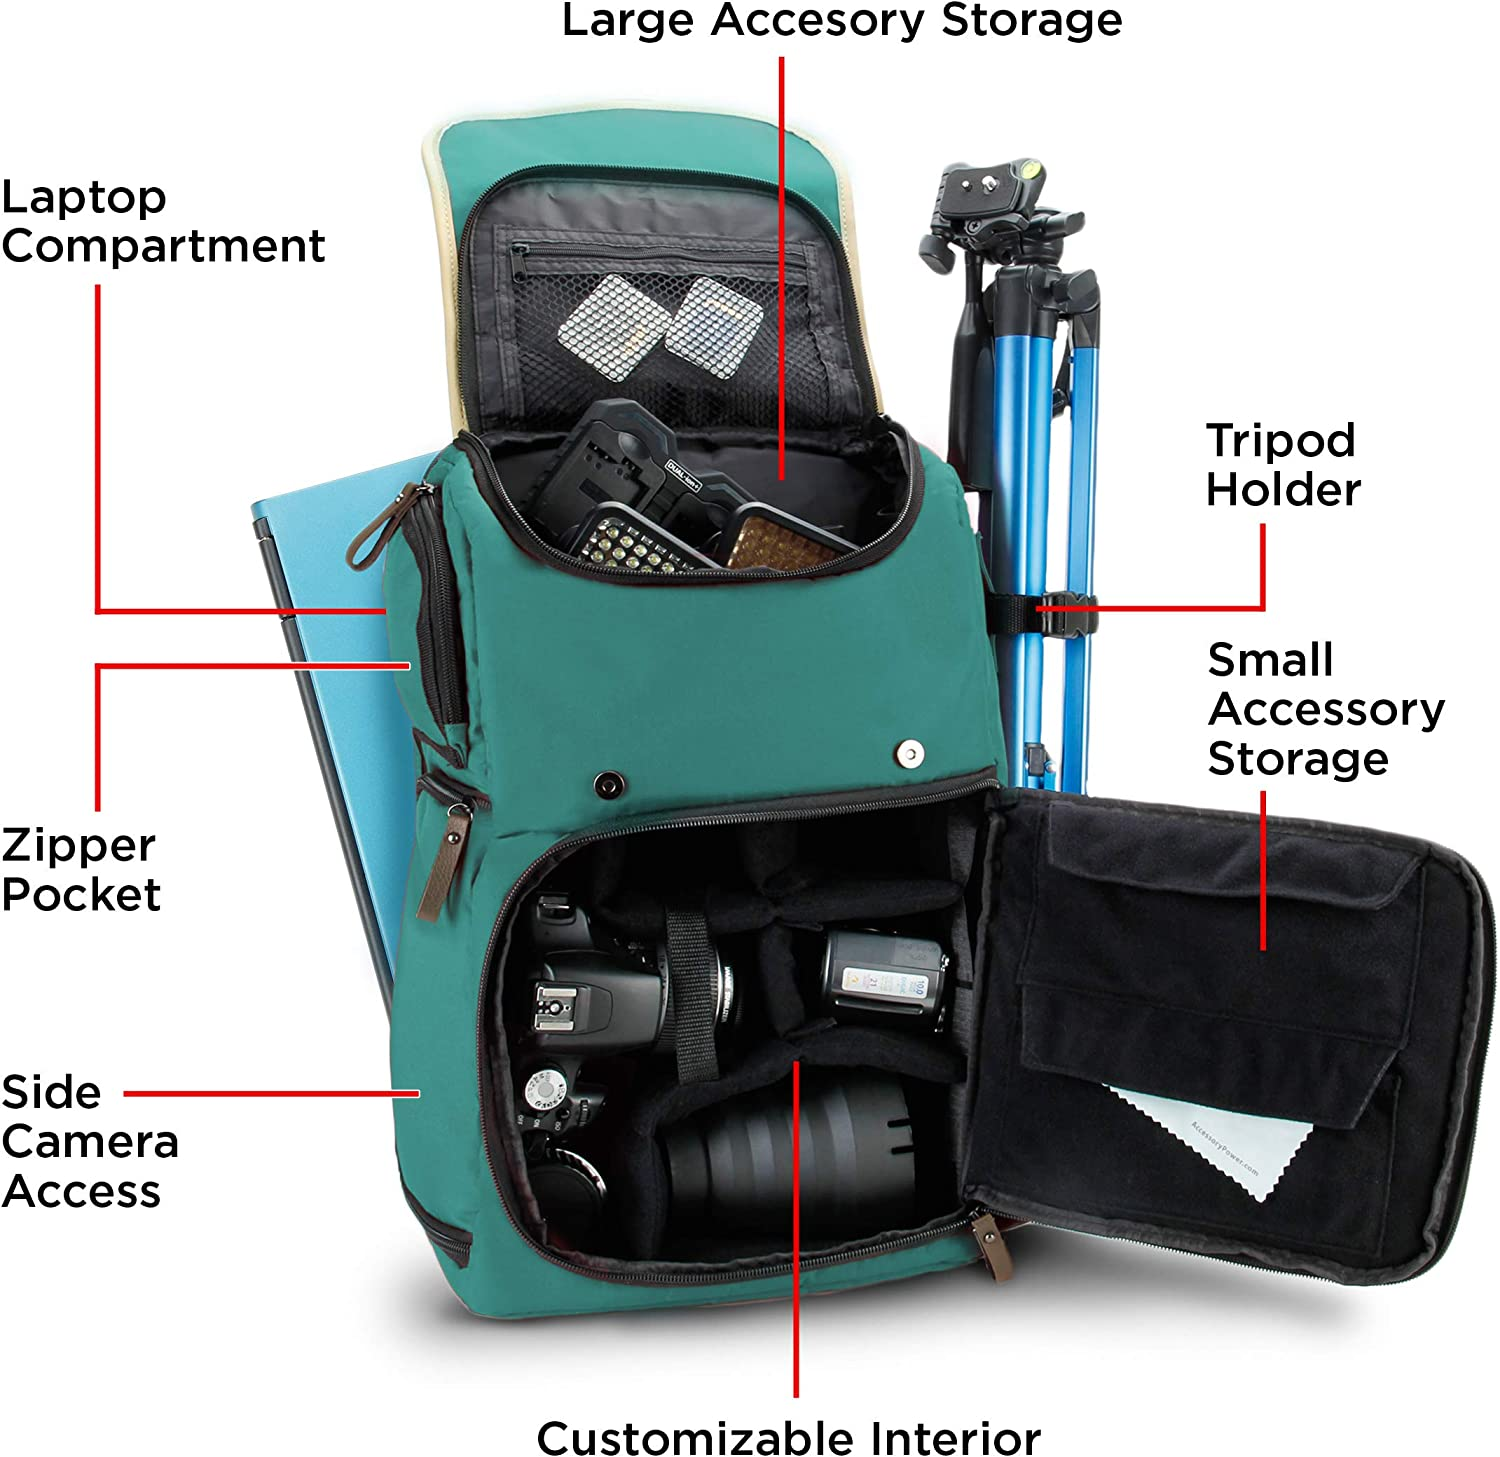 Long-Lasting Durability and Weatherproof Rain Cover Accessory Storage Green GOgroove Full-Size DSLR Photography Backpack Case for Camera and Laptop with 15.6 inch Laptop Space Tripod Holder